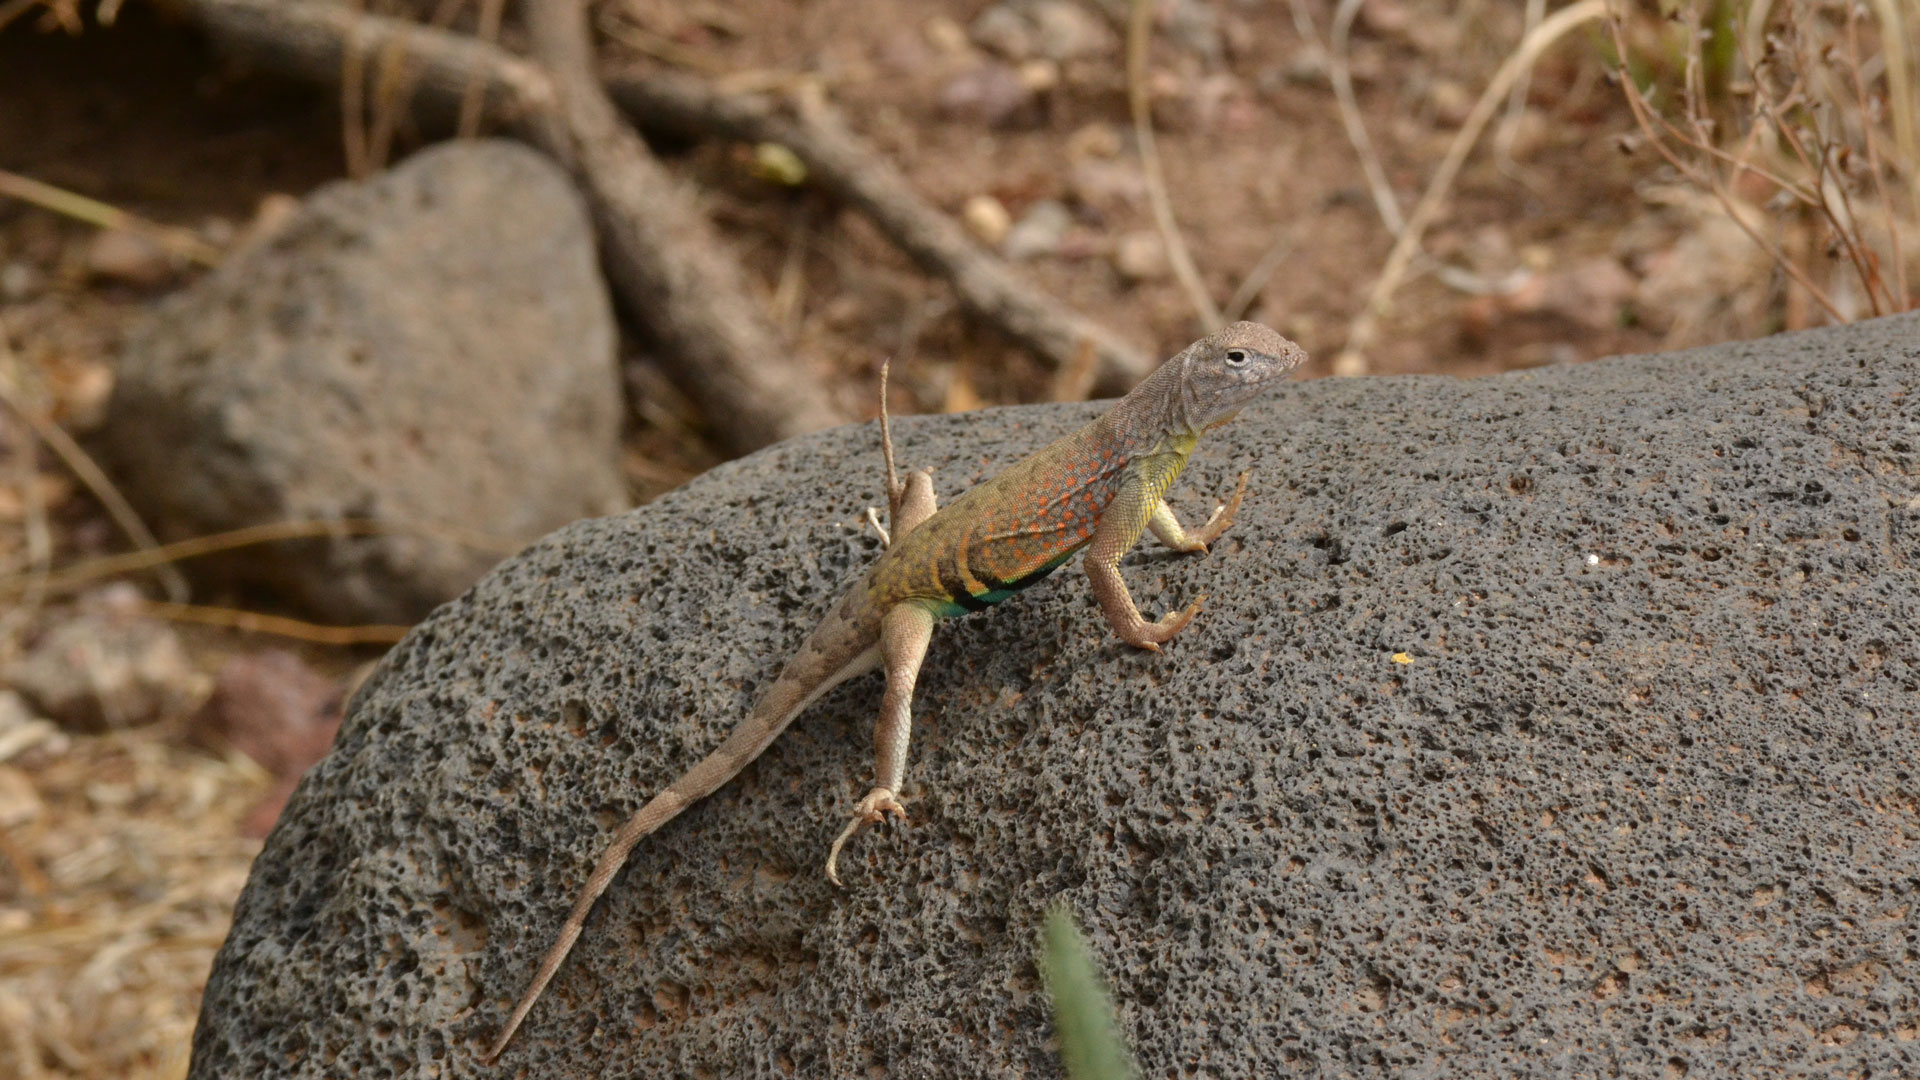 Greater Earless Lizards